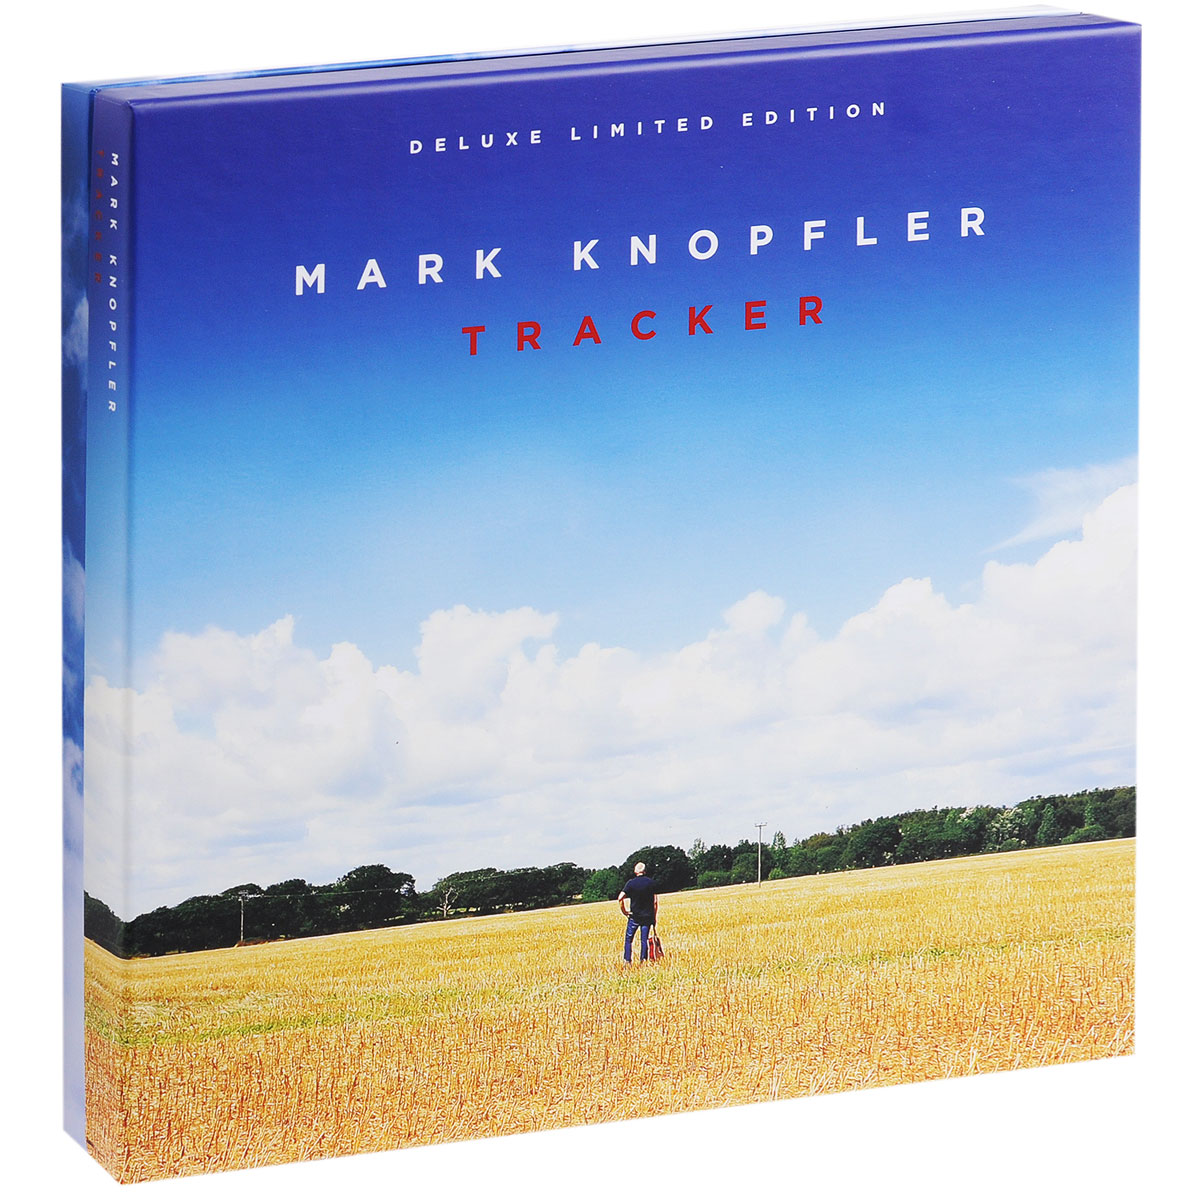 Марк Нопфлер Mark Knopfler. Tracker. Deluxe Limited Edition (2 CD + DVD + 2 LP) heat gun 2000w 220v temperature adjustable temperature industrial electric hot air gun